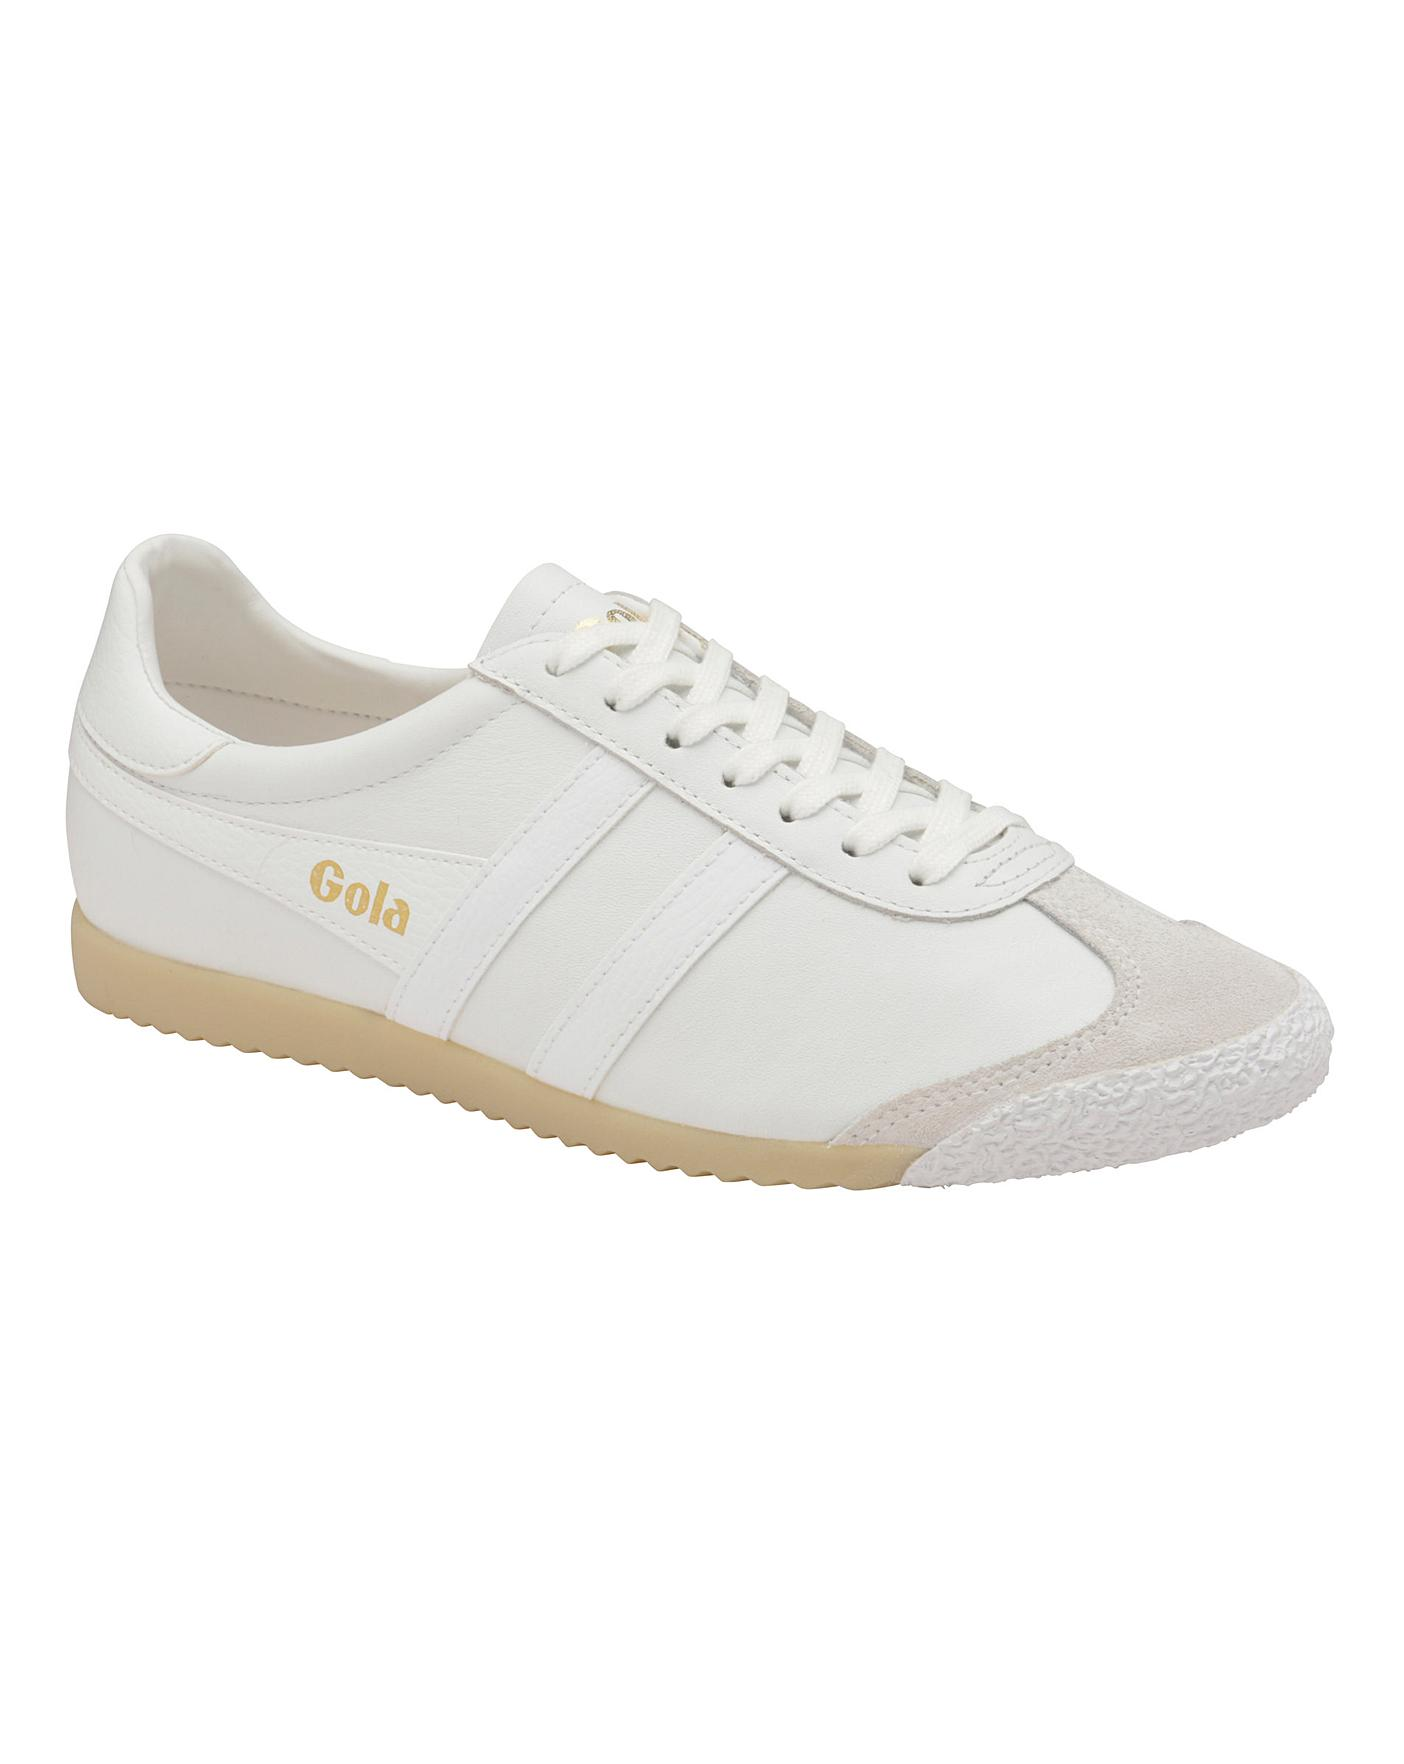 Gola Classics Harrier Trainers | Oxendales